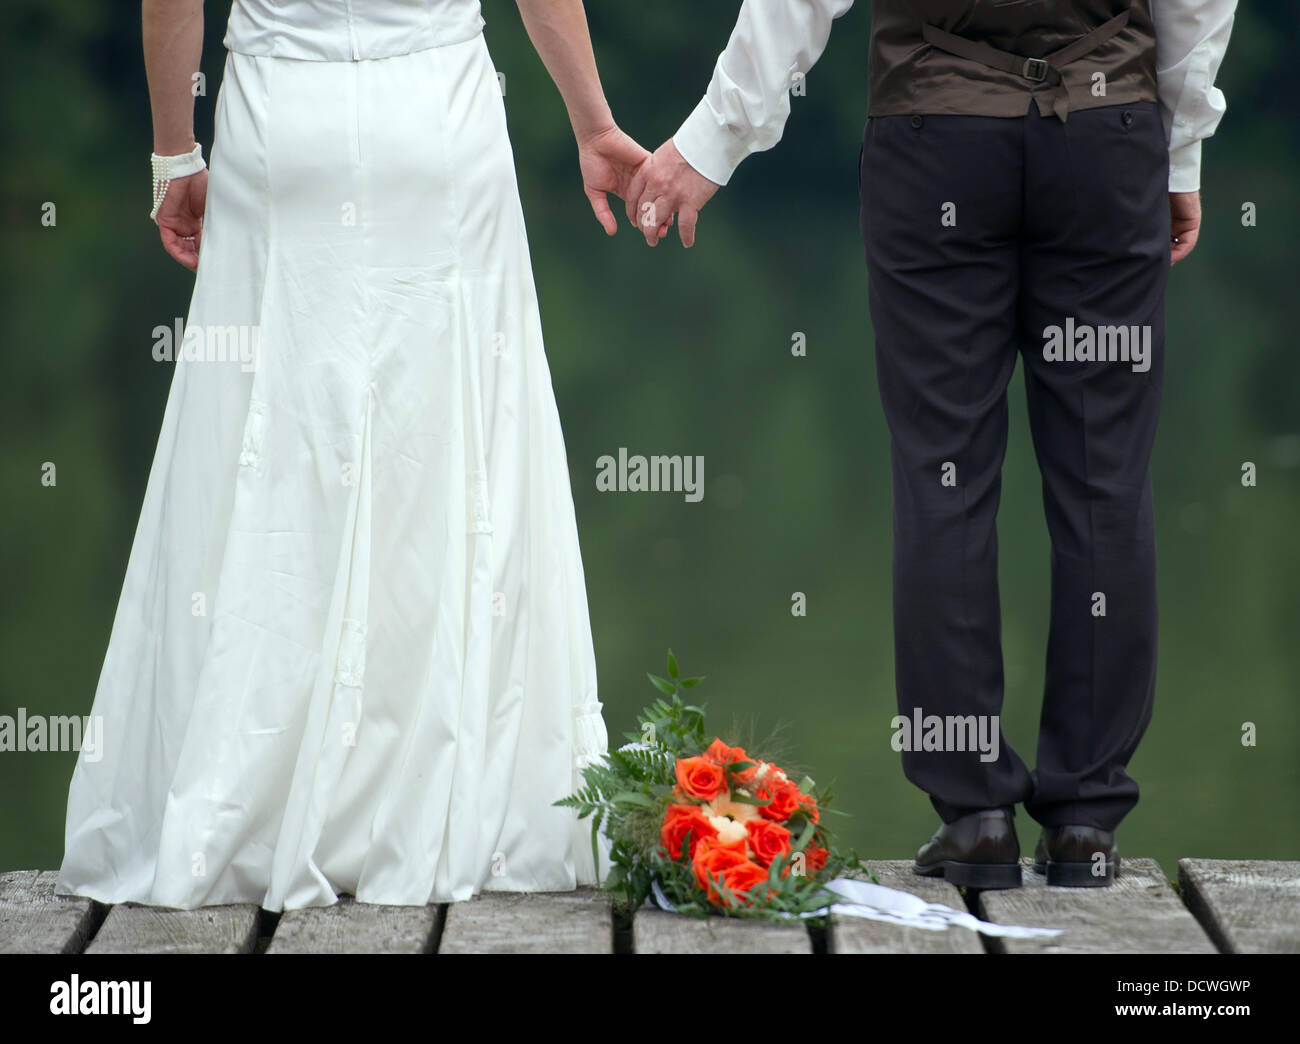 Marriage beuro in germany